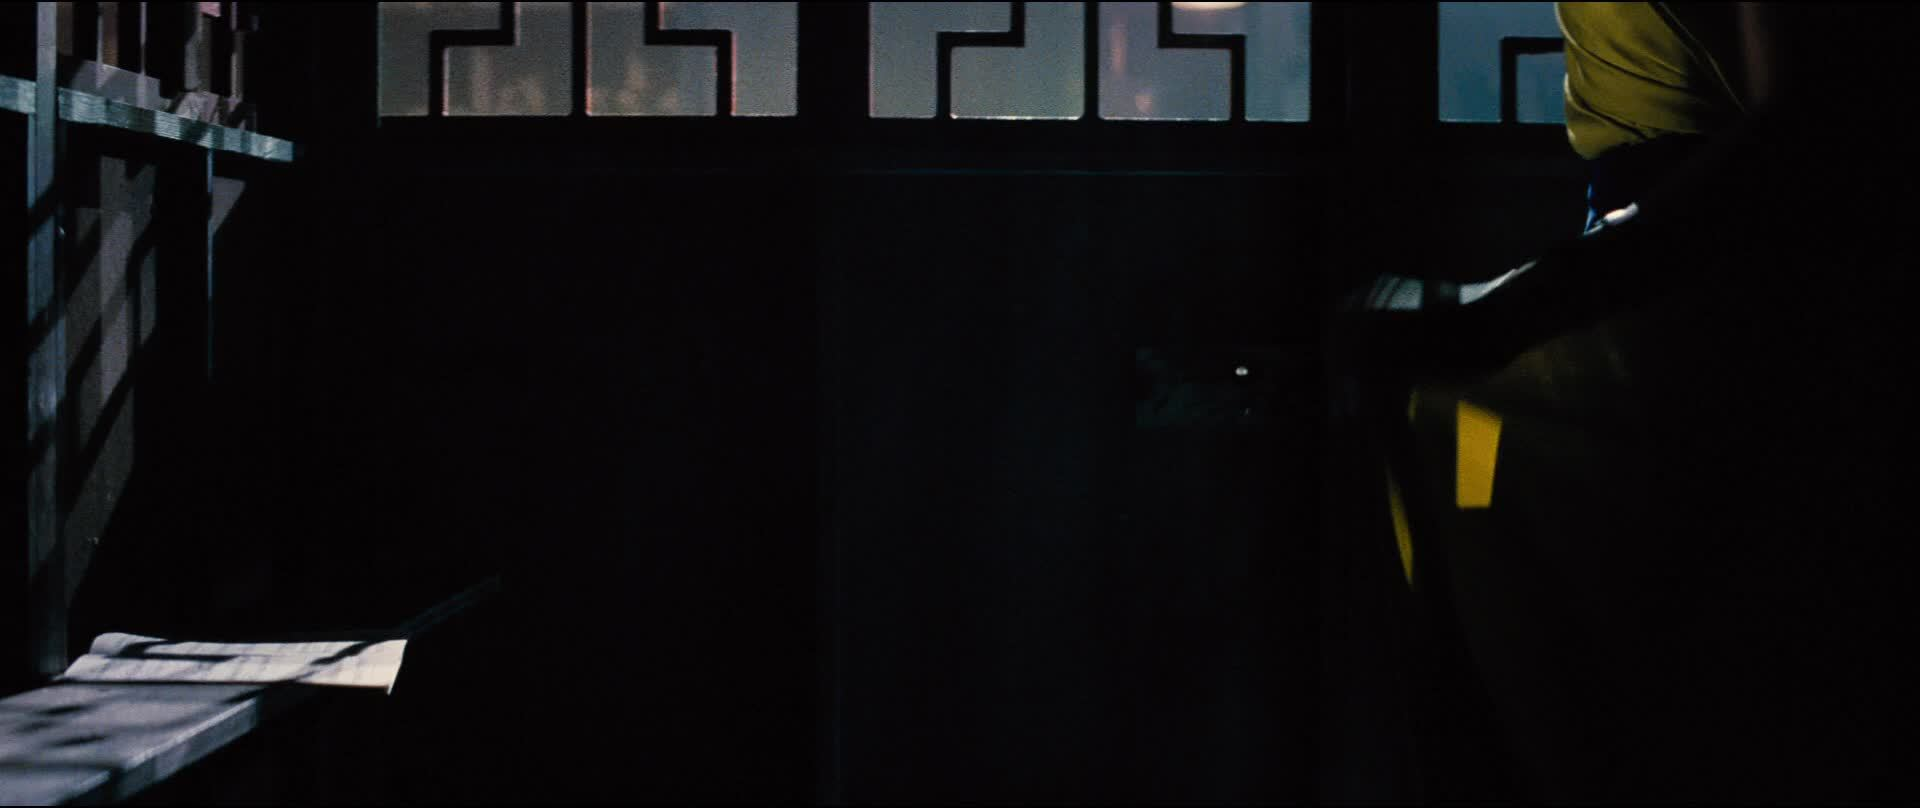 Mission Impossible, RebeccaLouisaFerguson, A perfect shot GIFs